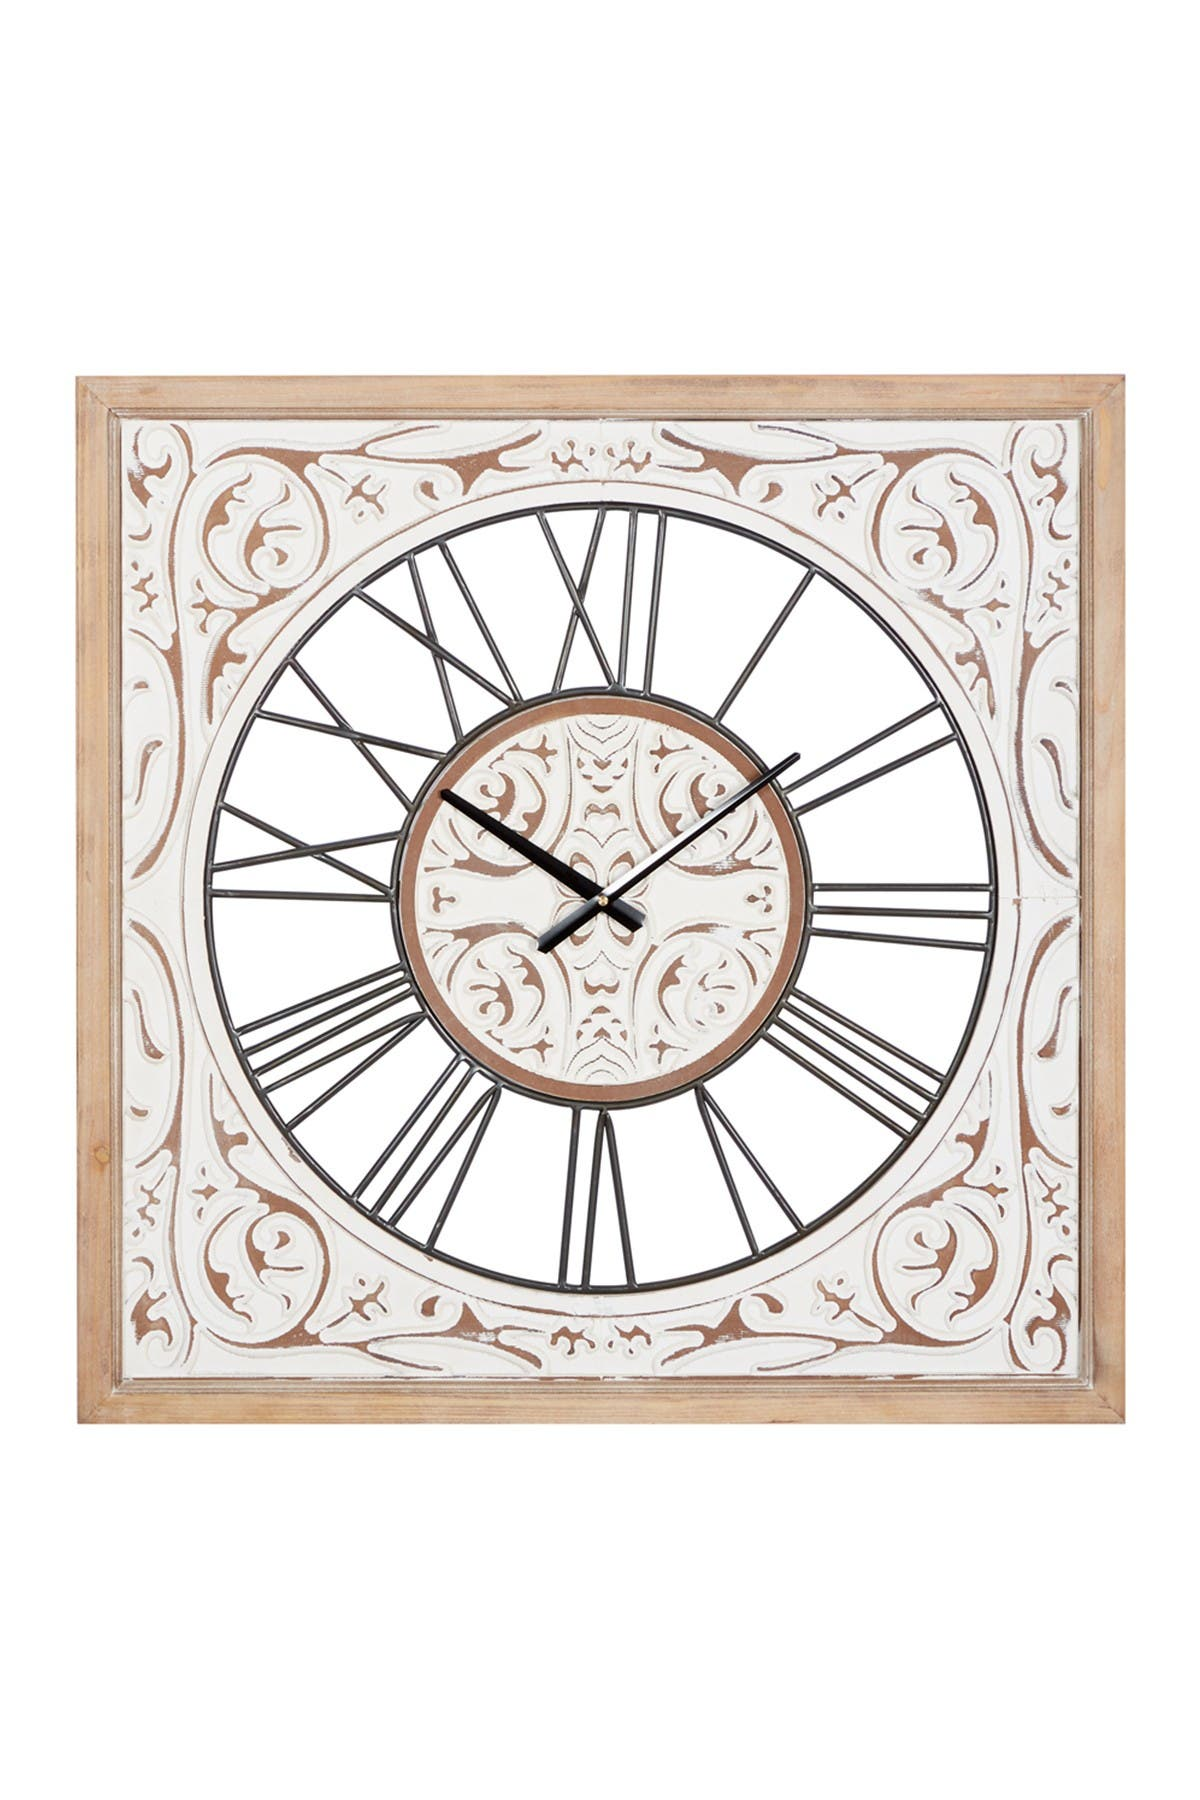 Willow Row White Wood Farmhouse Wall Clock 29 X 29 X 2 Nordstrom Rack